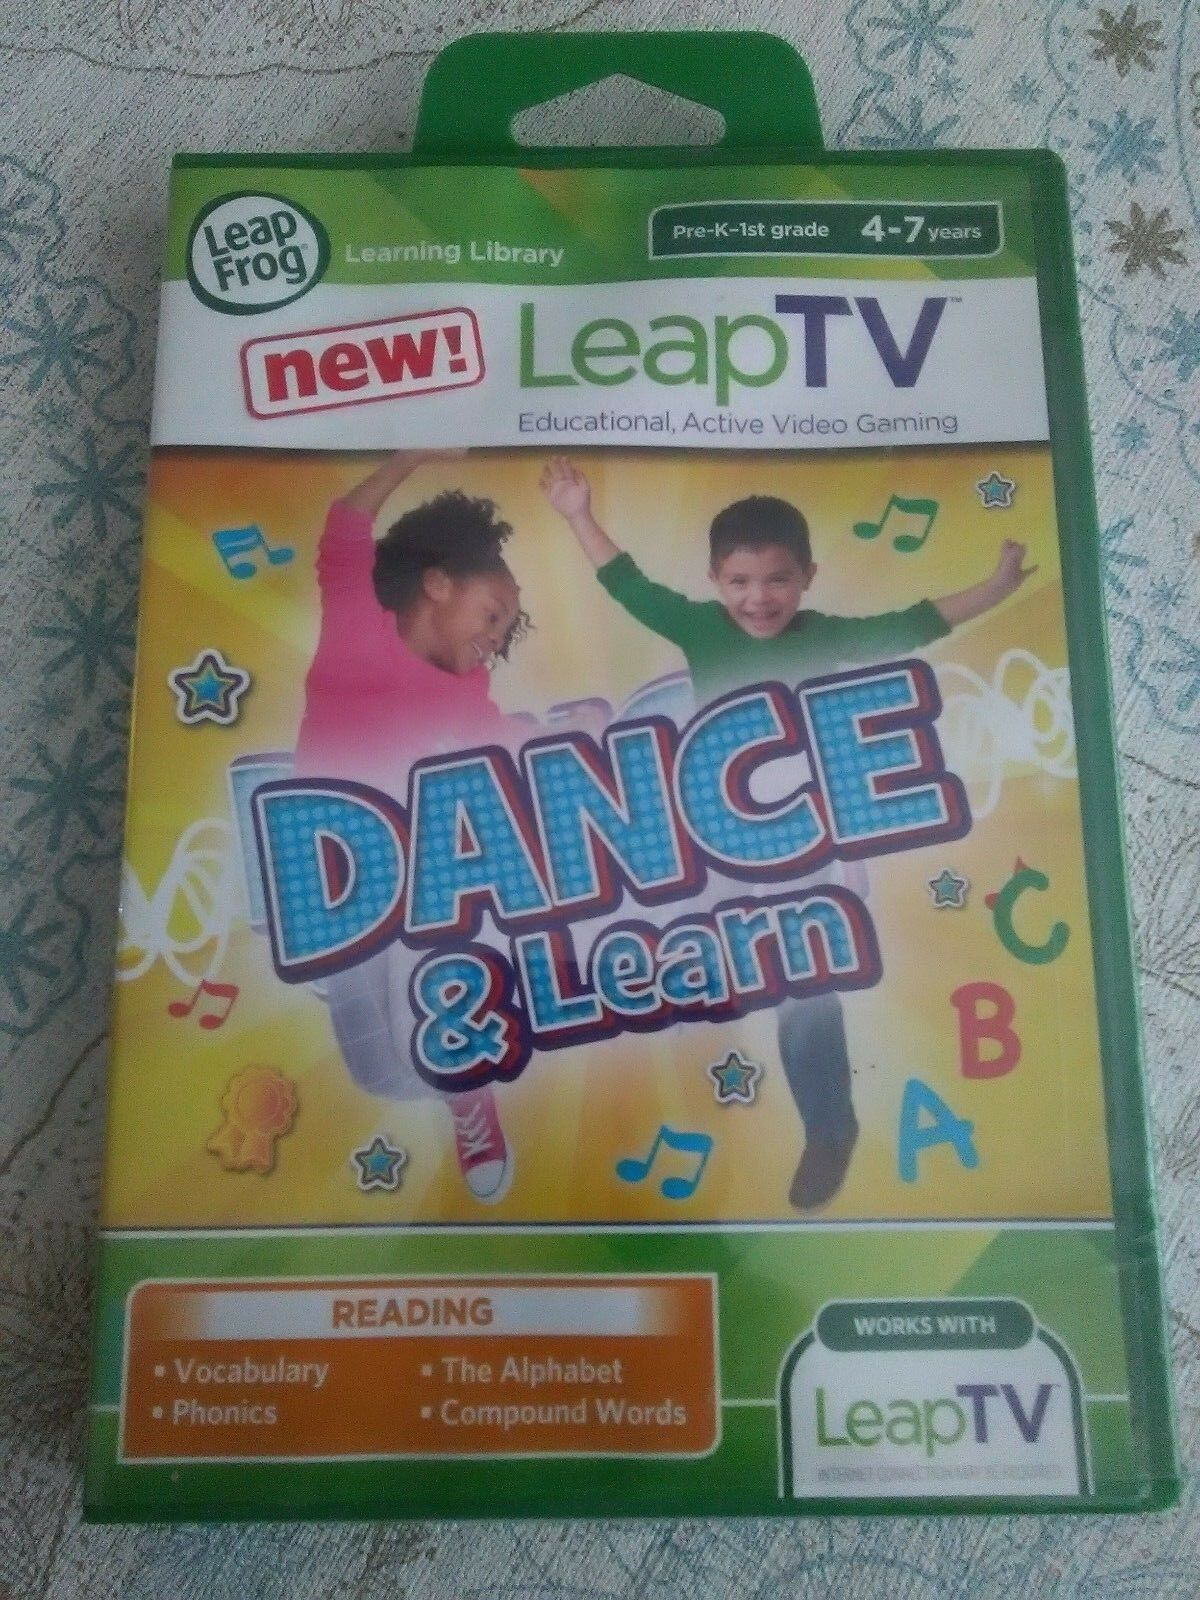 Leapfrog Leap TV Game   Dance and Learn Educational Game for LeapTV NEW